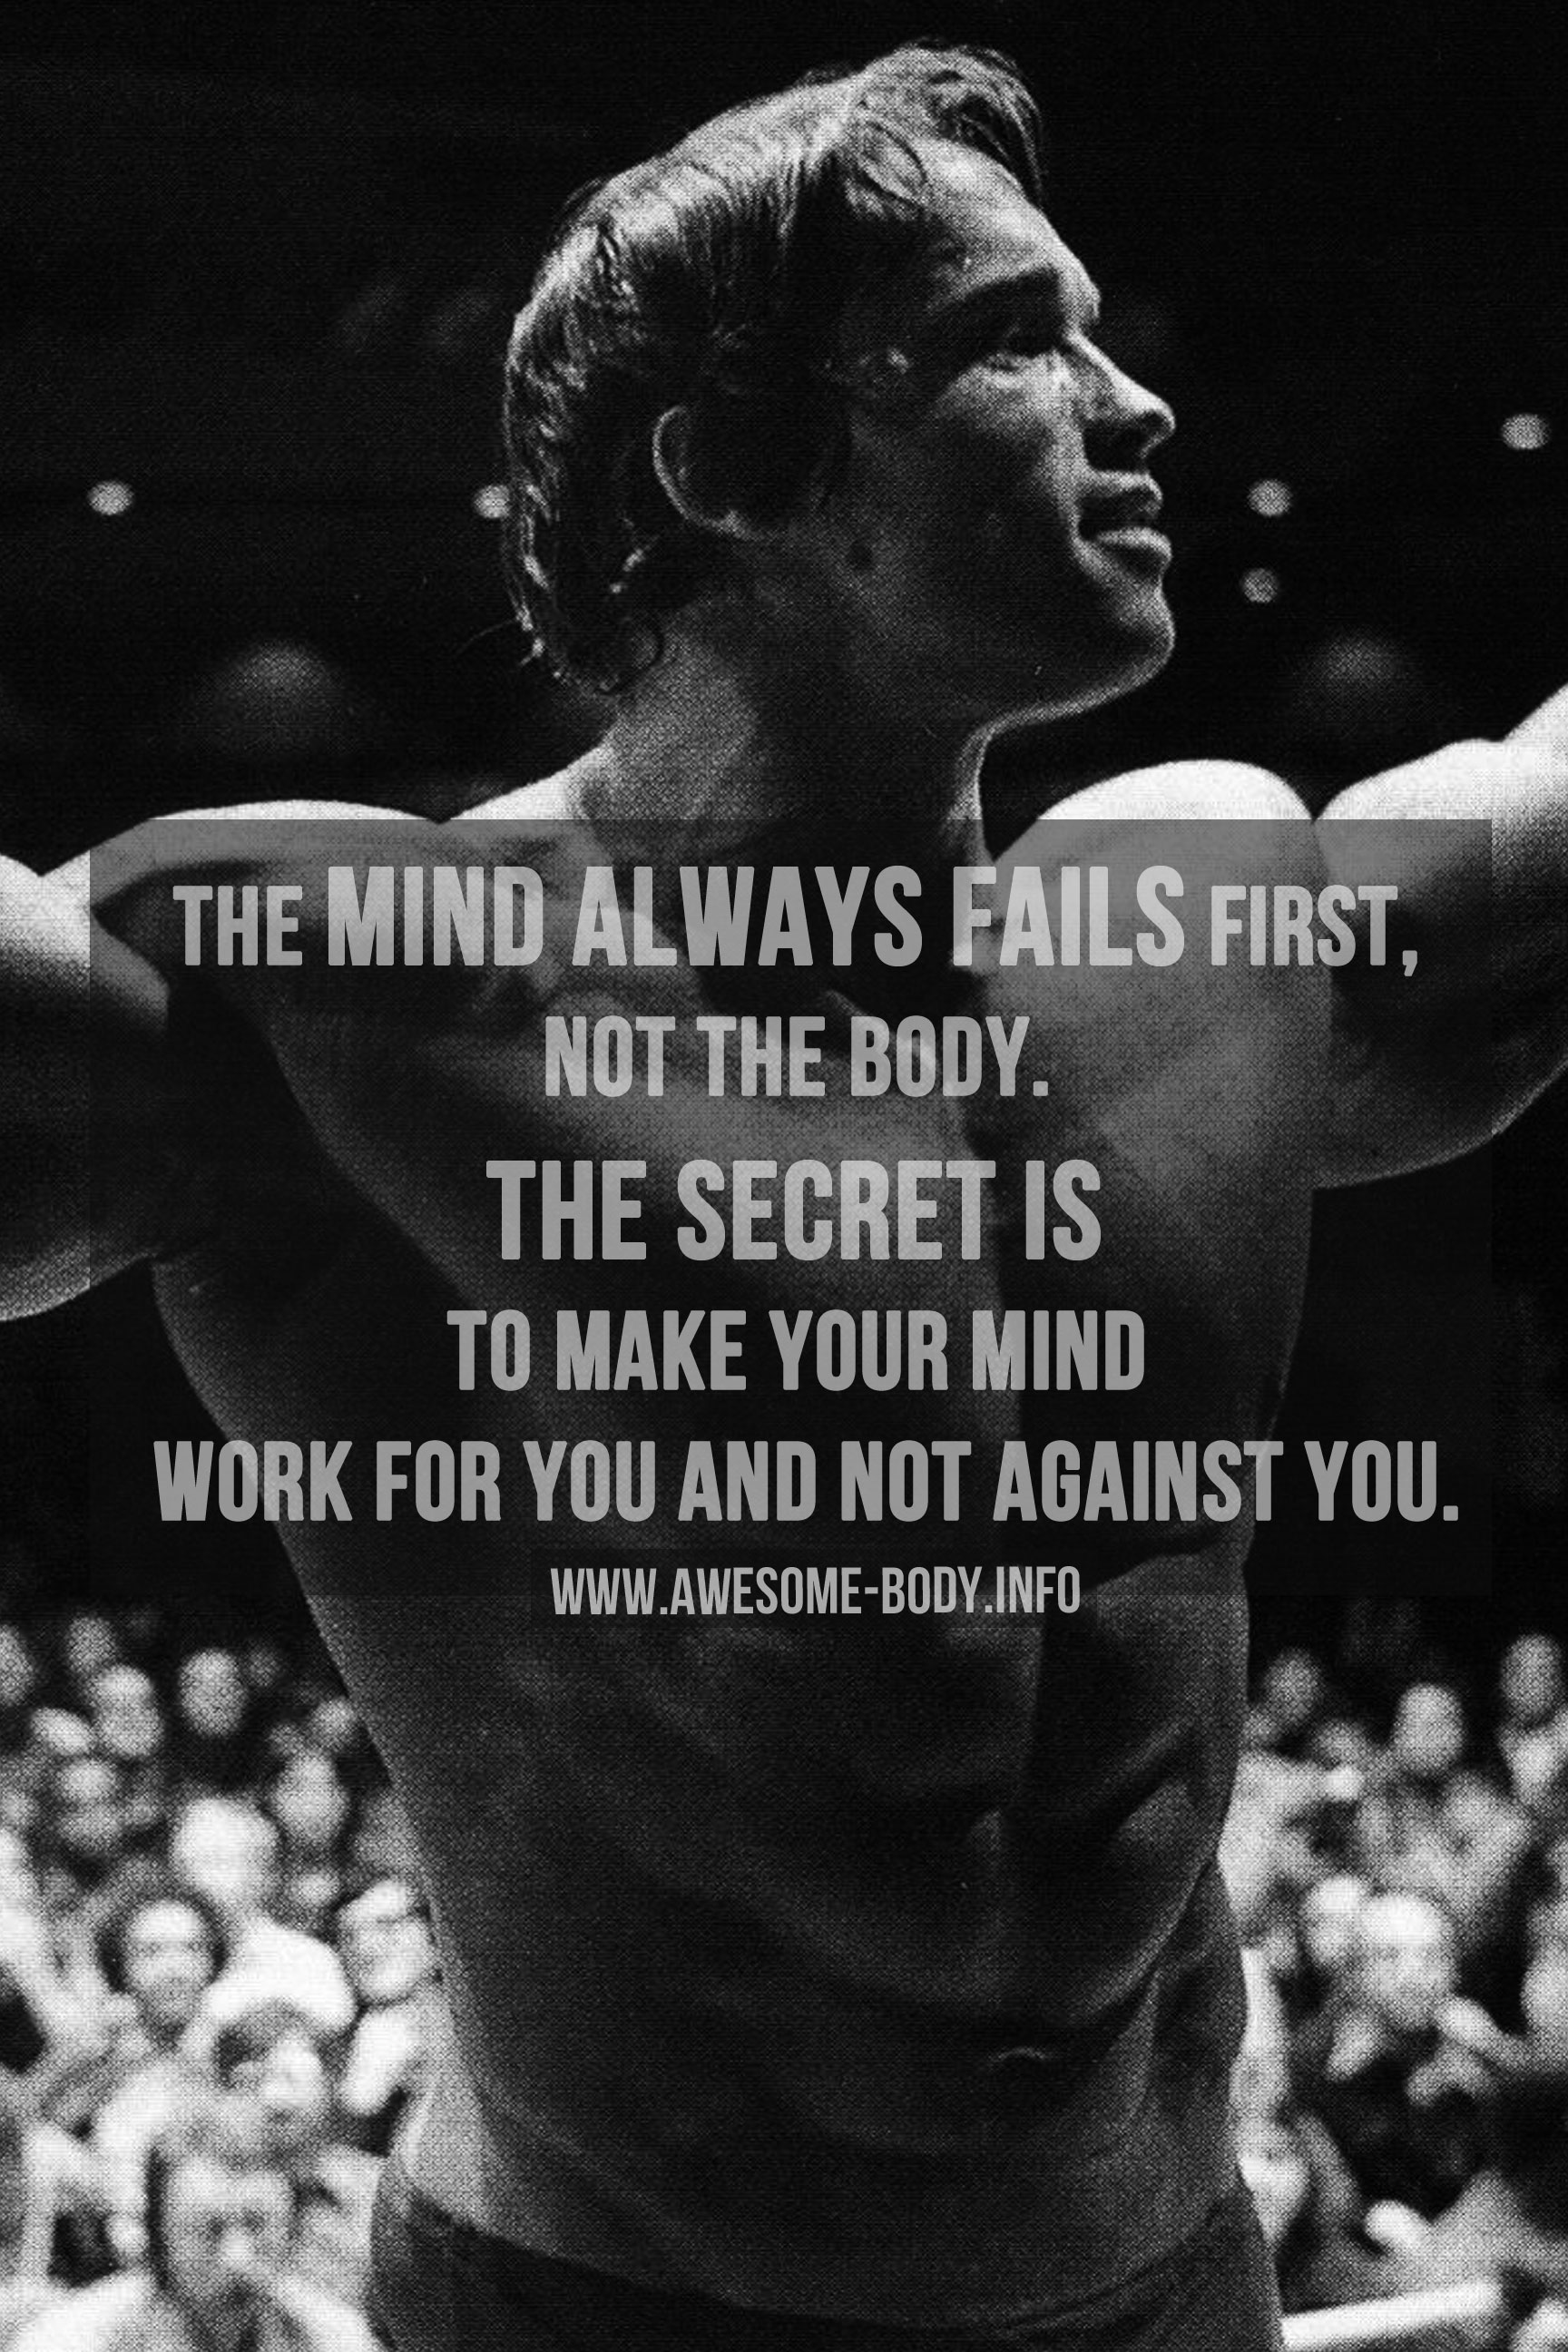 Bodybuilding Motivational Posters Gym Awesome Body 1728x2592